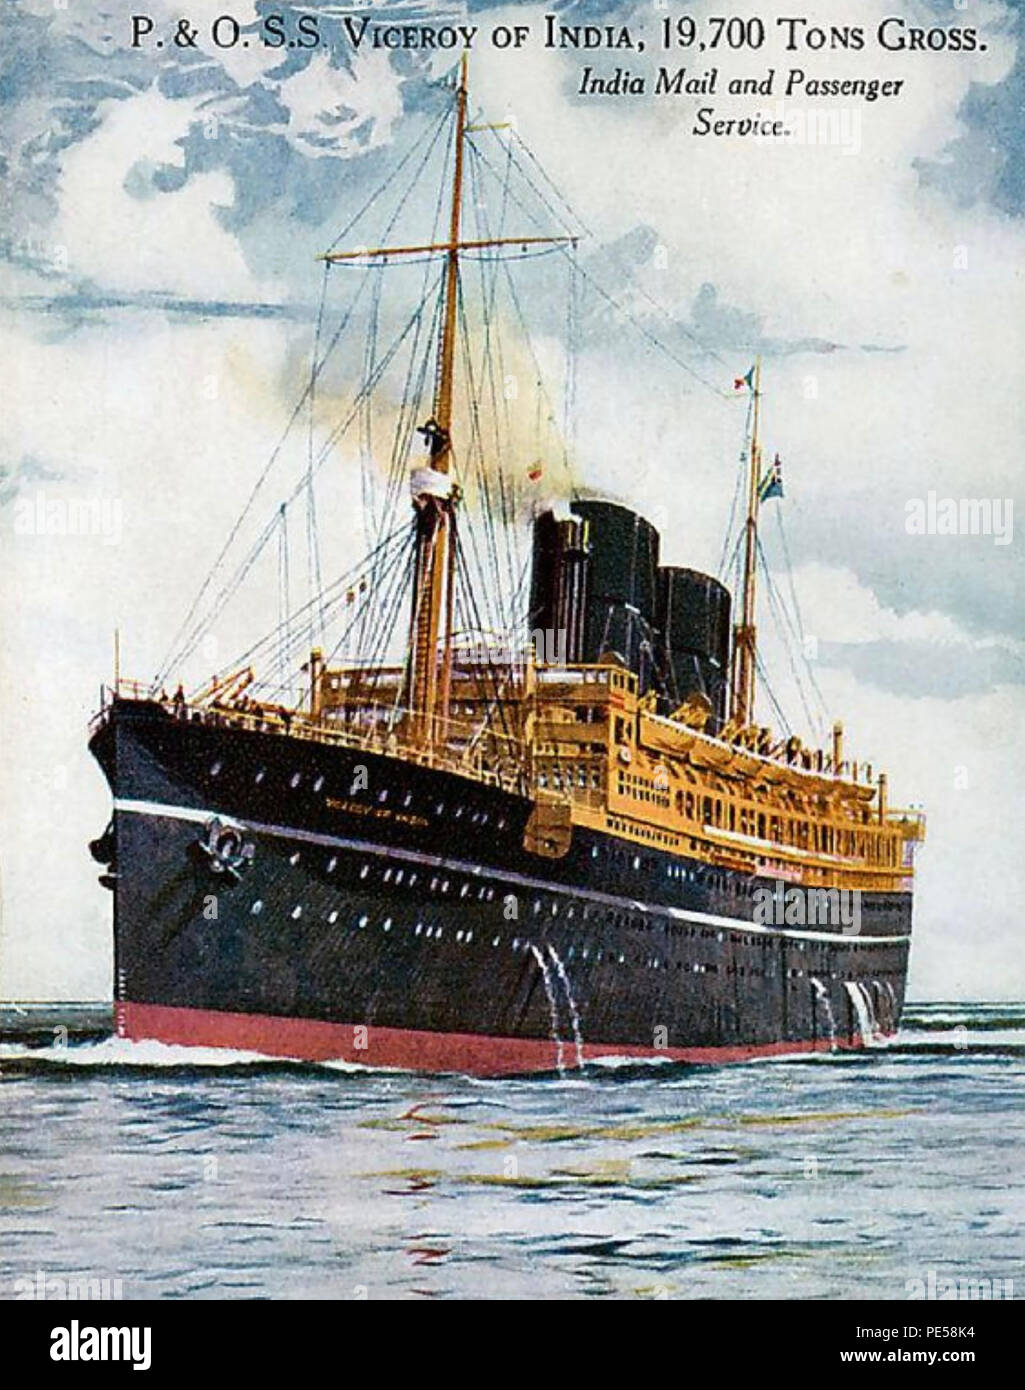 RMS VICEROY OF INDIA ocean liner of the P&O Line used on the Tilbury-Bombay route in the 20s and 30s - Stock Image